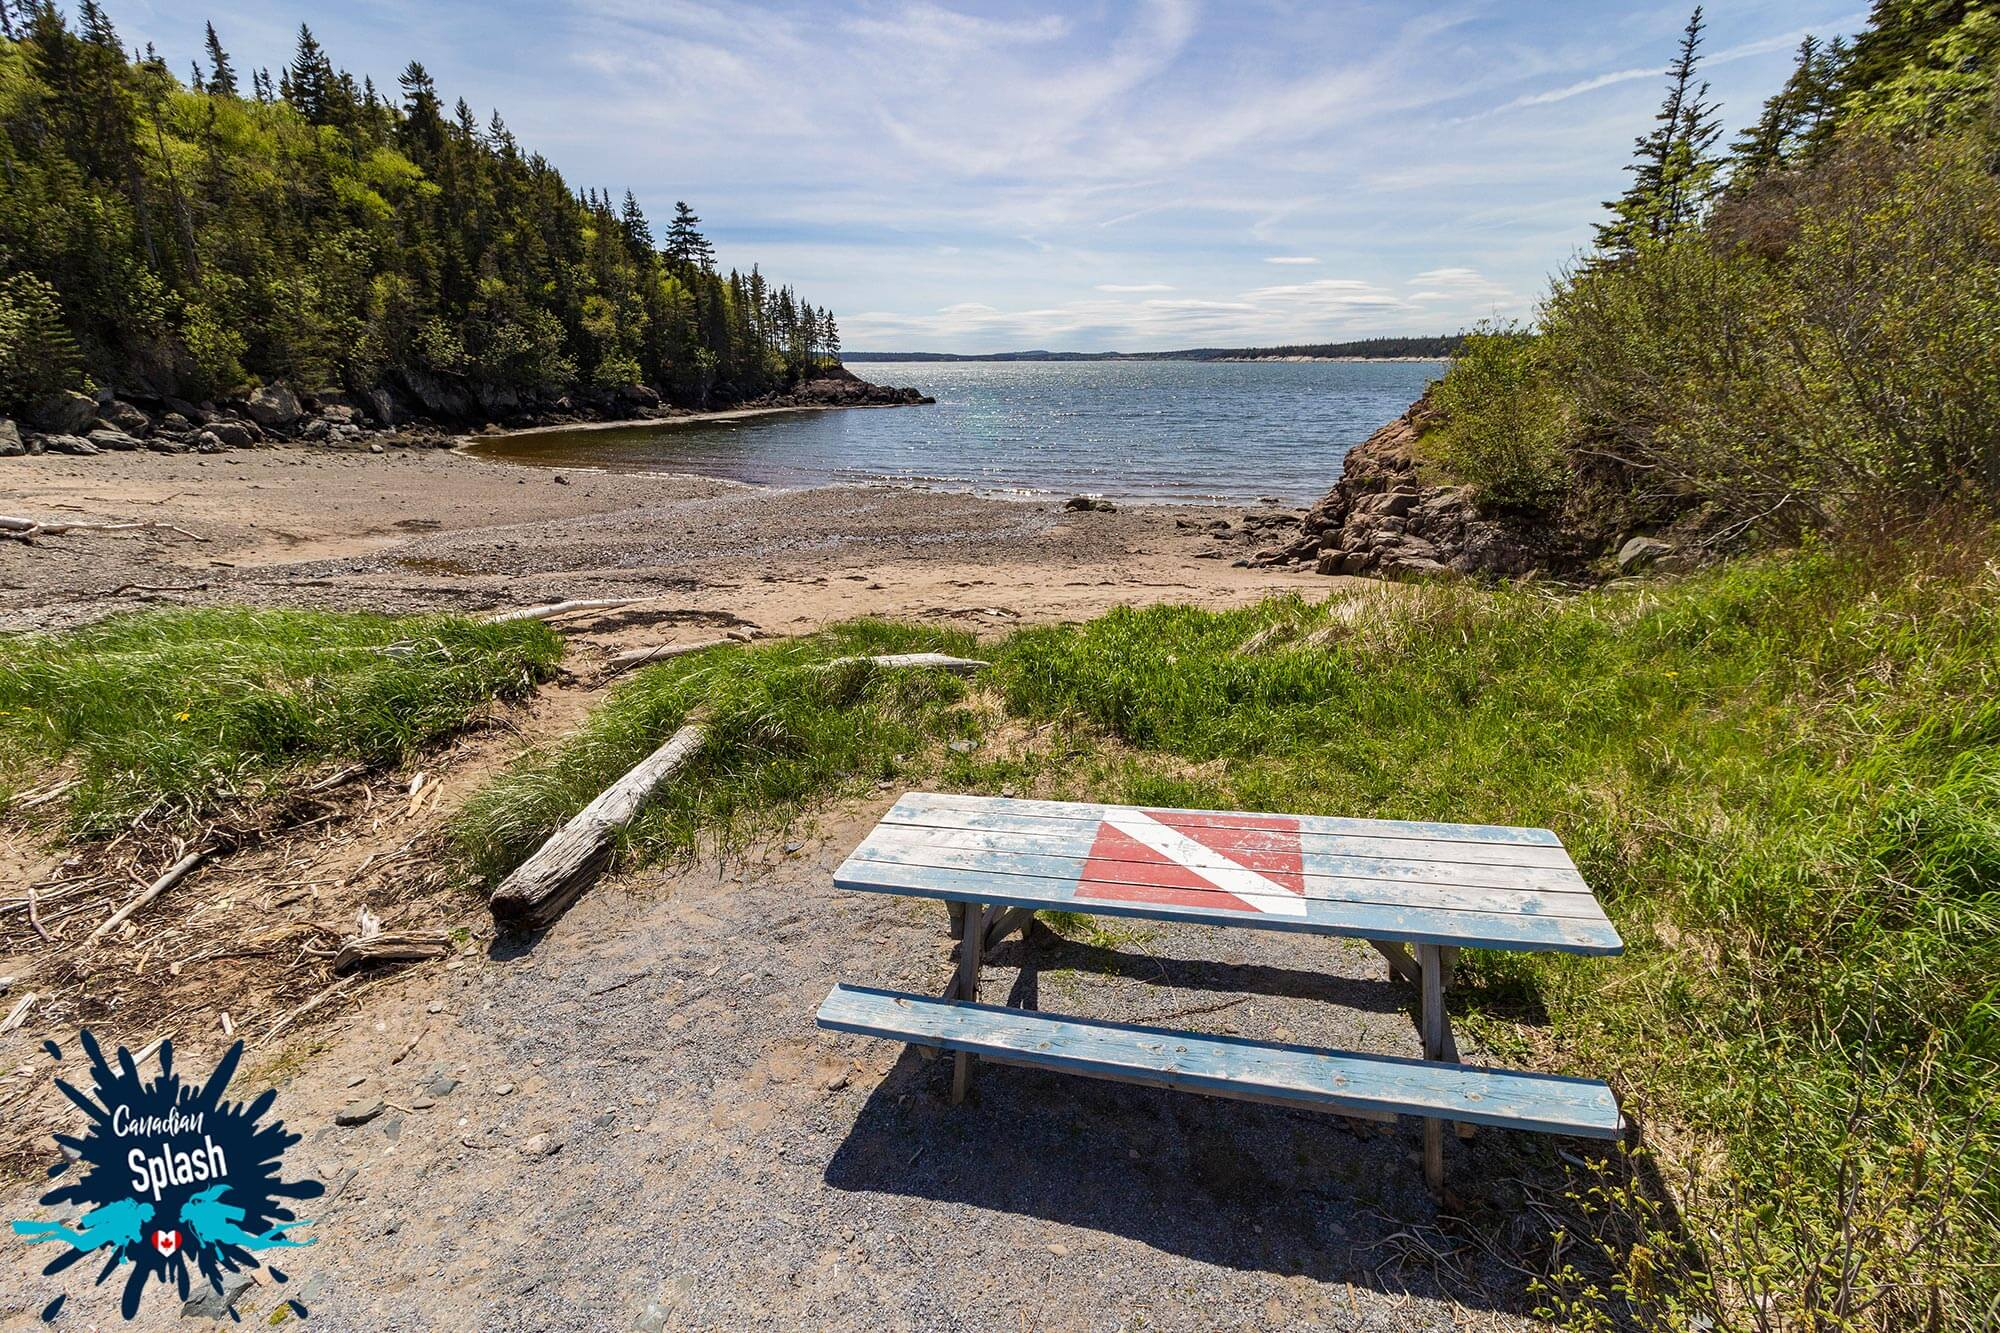 New River Beach Scuba Diving Site With Dive Picnic Table For Preparation, Saint John, New Brunswick, Canadian Splash